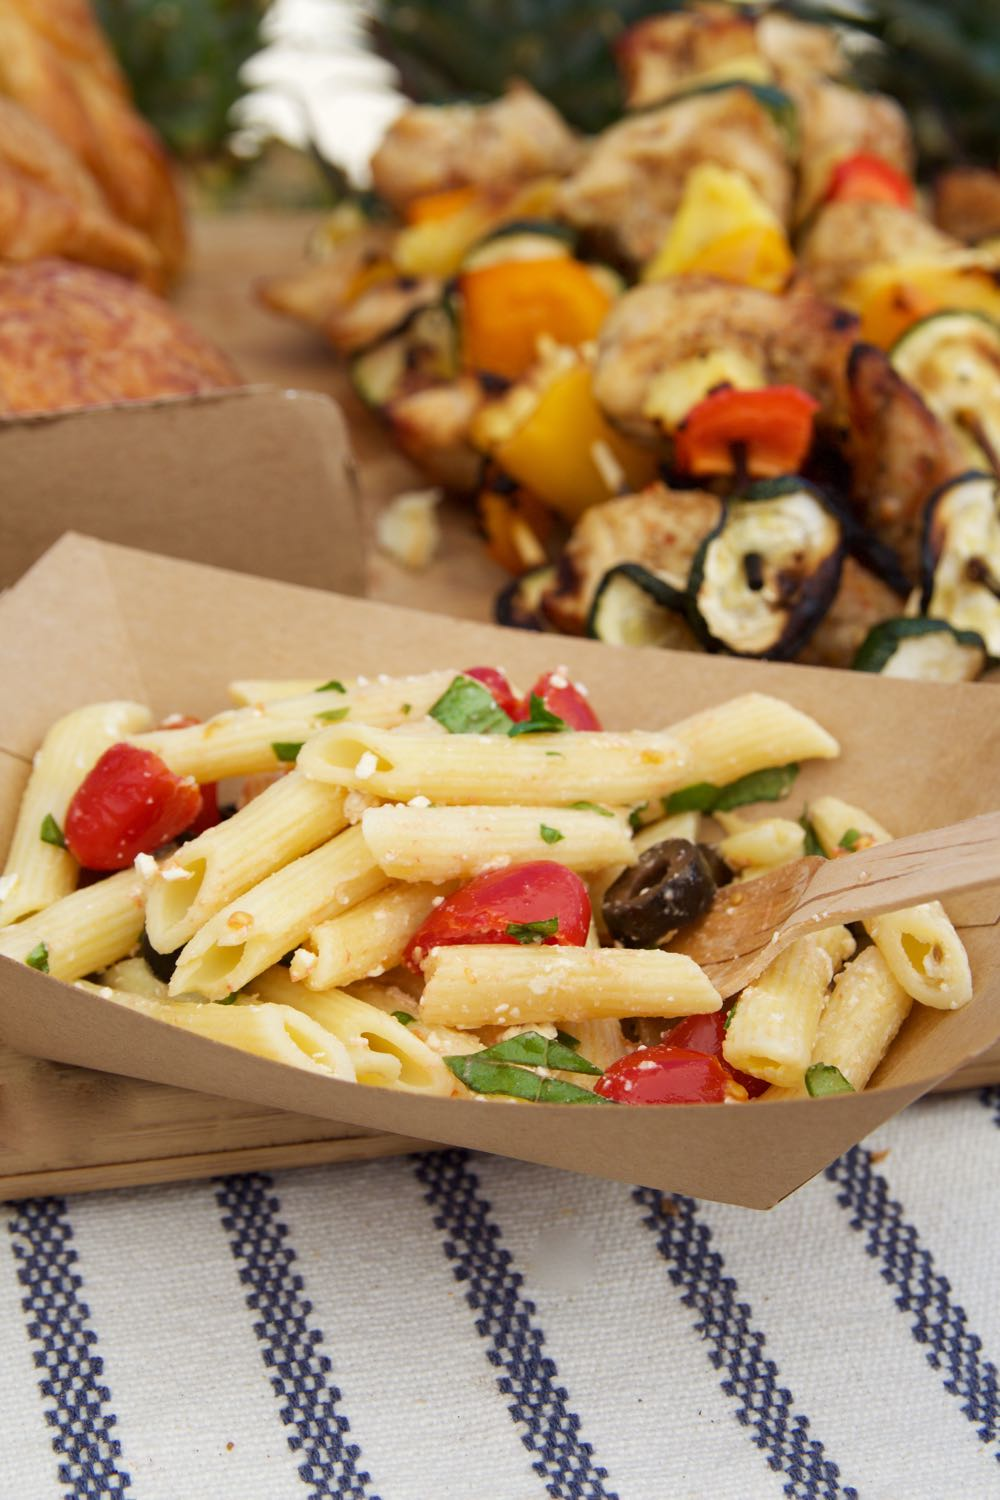 Cold Pasta Salad with Tomatoes, Feta, and Black Olives